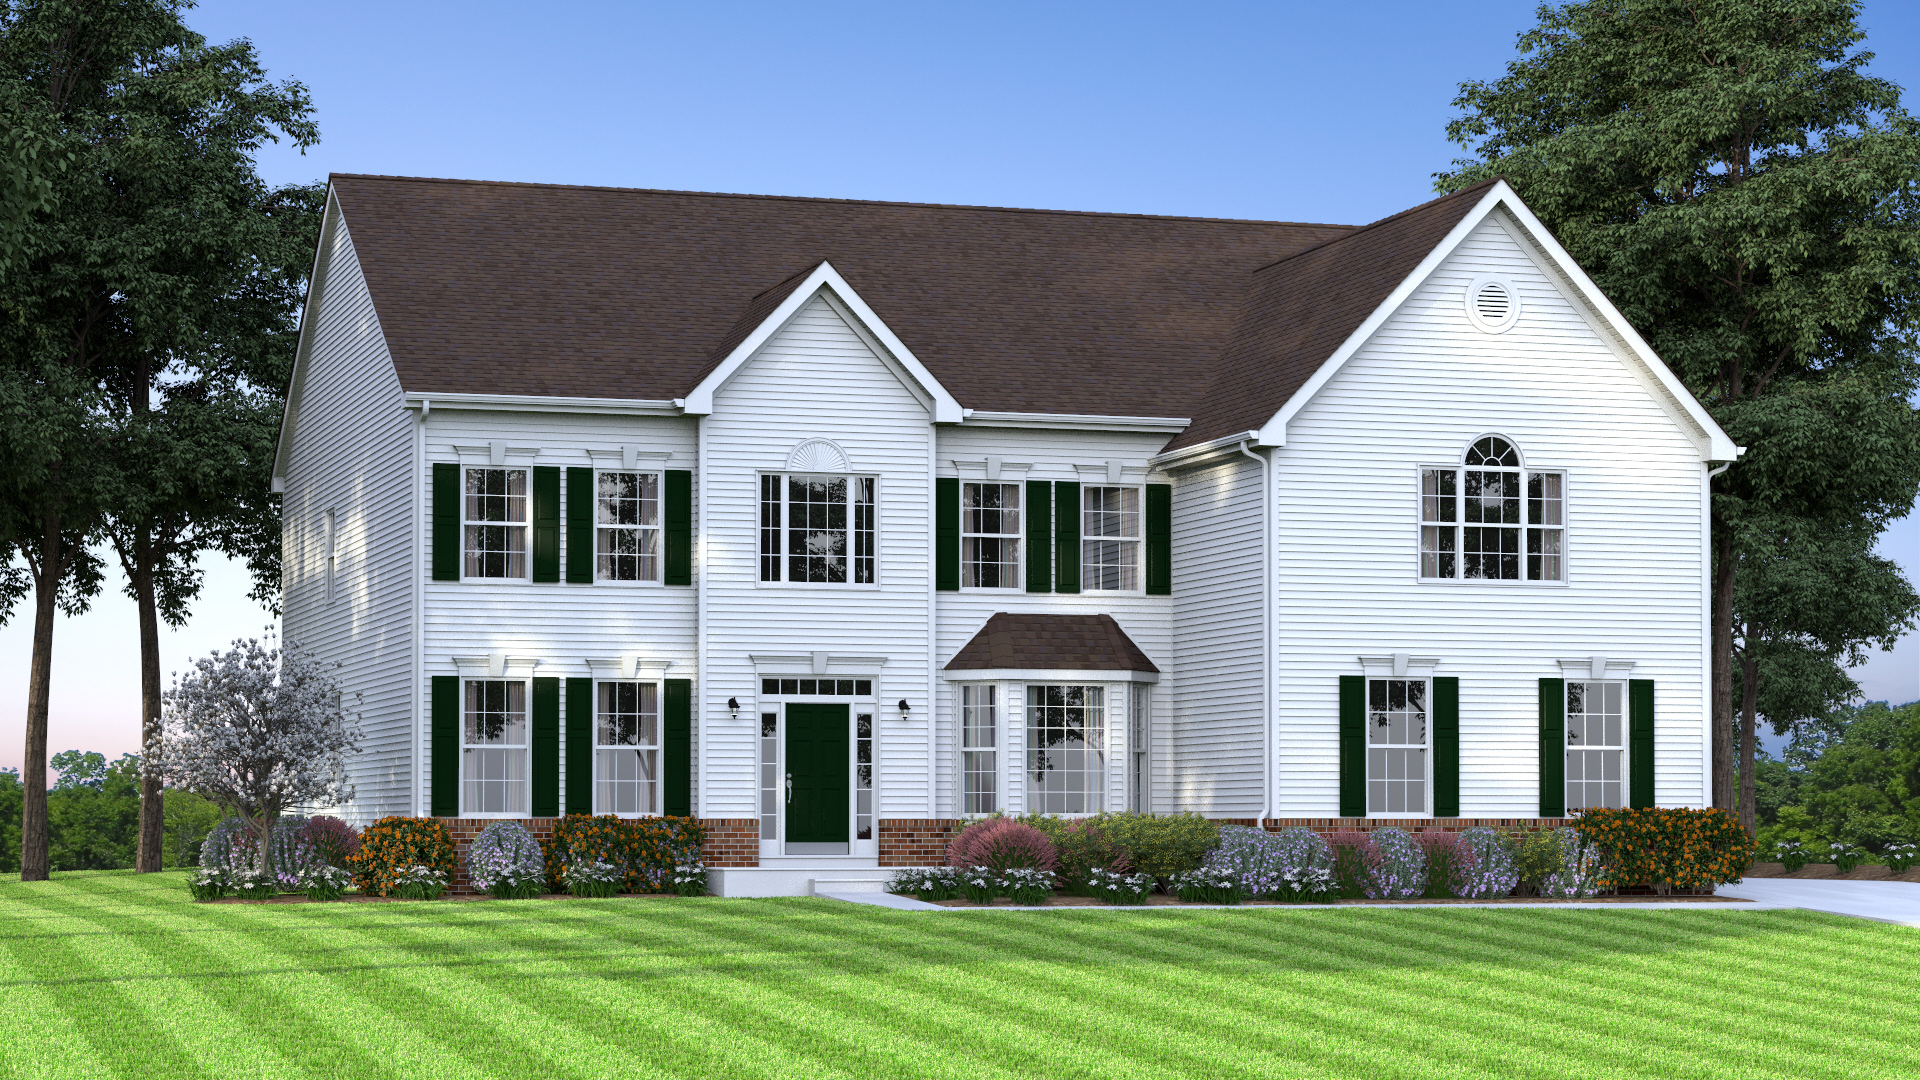 The Century  4,200 sf / 4 br / 2.5 ba / 2 car garage Starting at $371,990